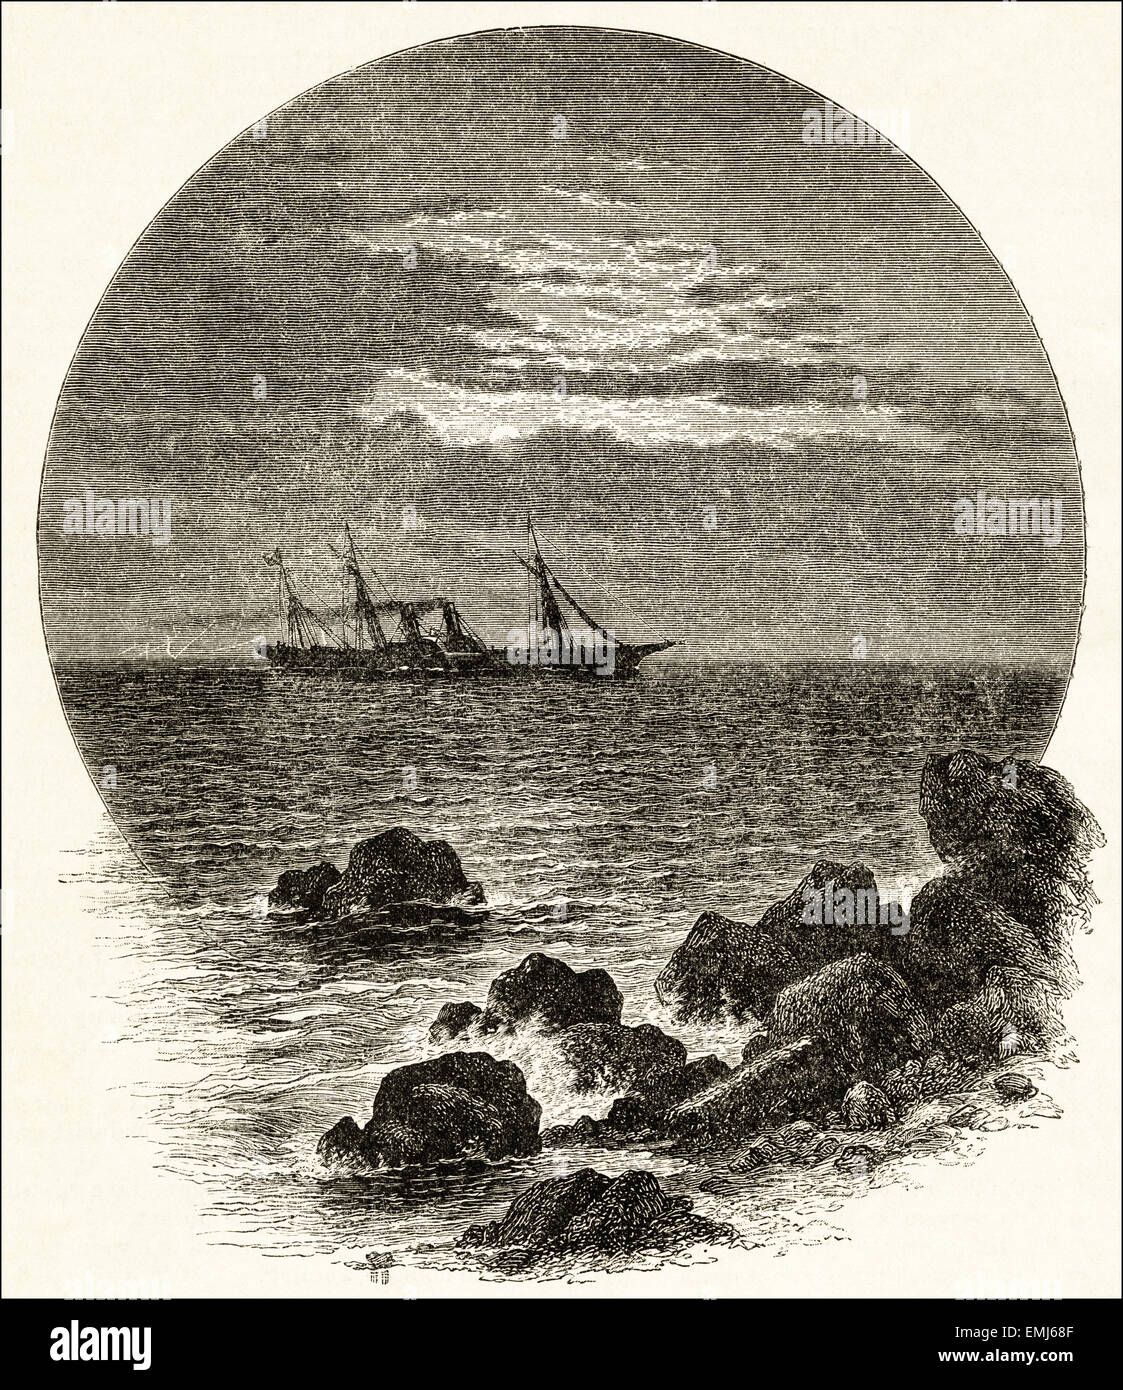 Paddle steamer at sea on night voyage. Victorian woodcut engraving dated 1890 - Stock Image